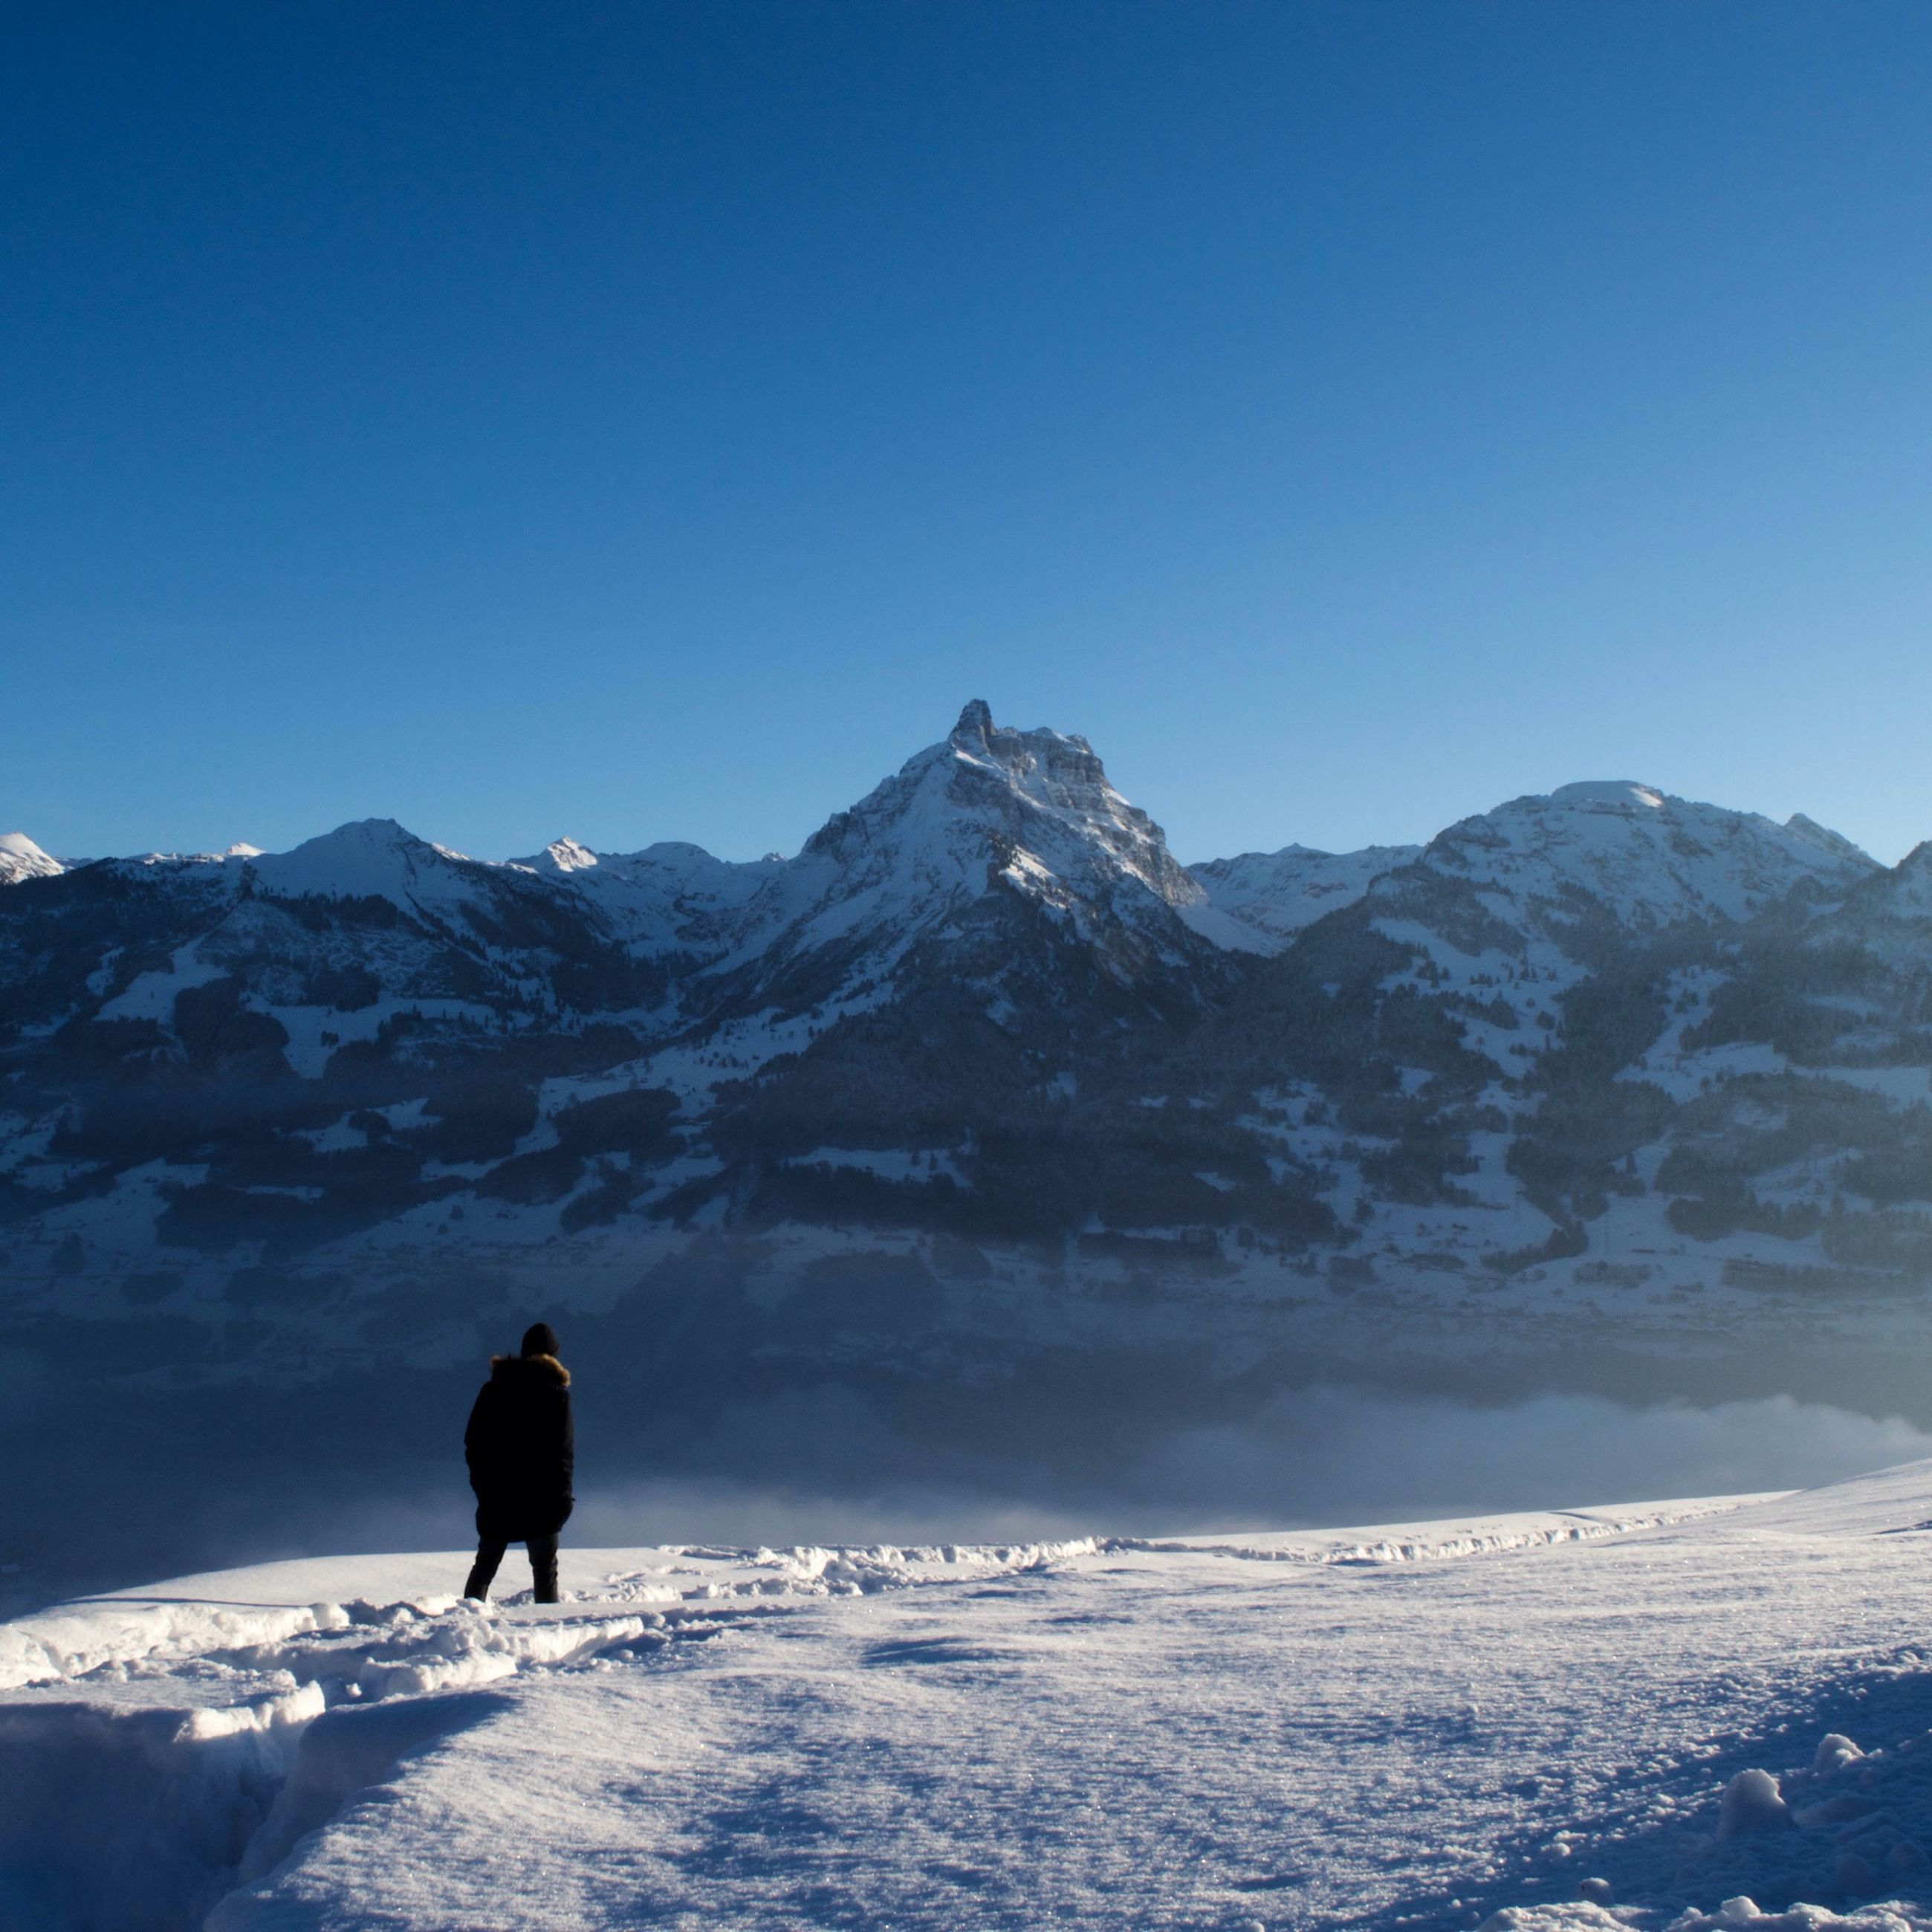 snow, winter, cold temperature, mountain, season, mountain range, clear sky, tranquil scene, scenics, tranquility, beauty in nature, snowcapped mountain, weather, copy space, nature, full length, leisure activity, landscape